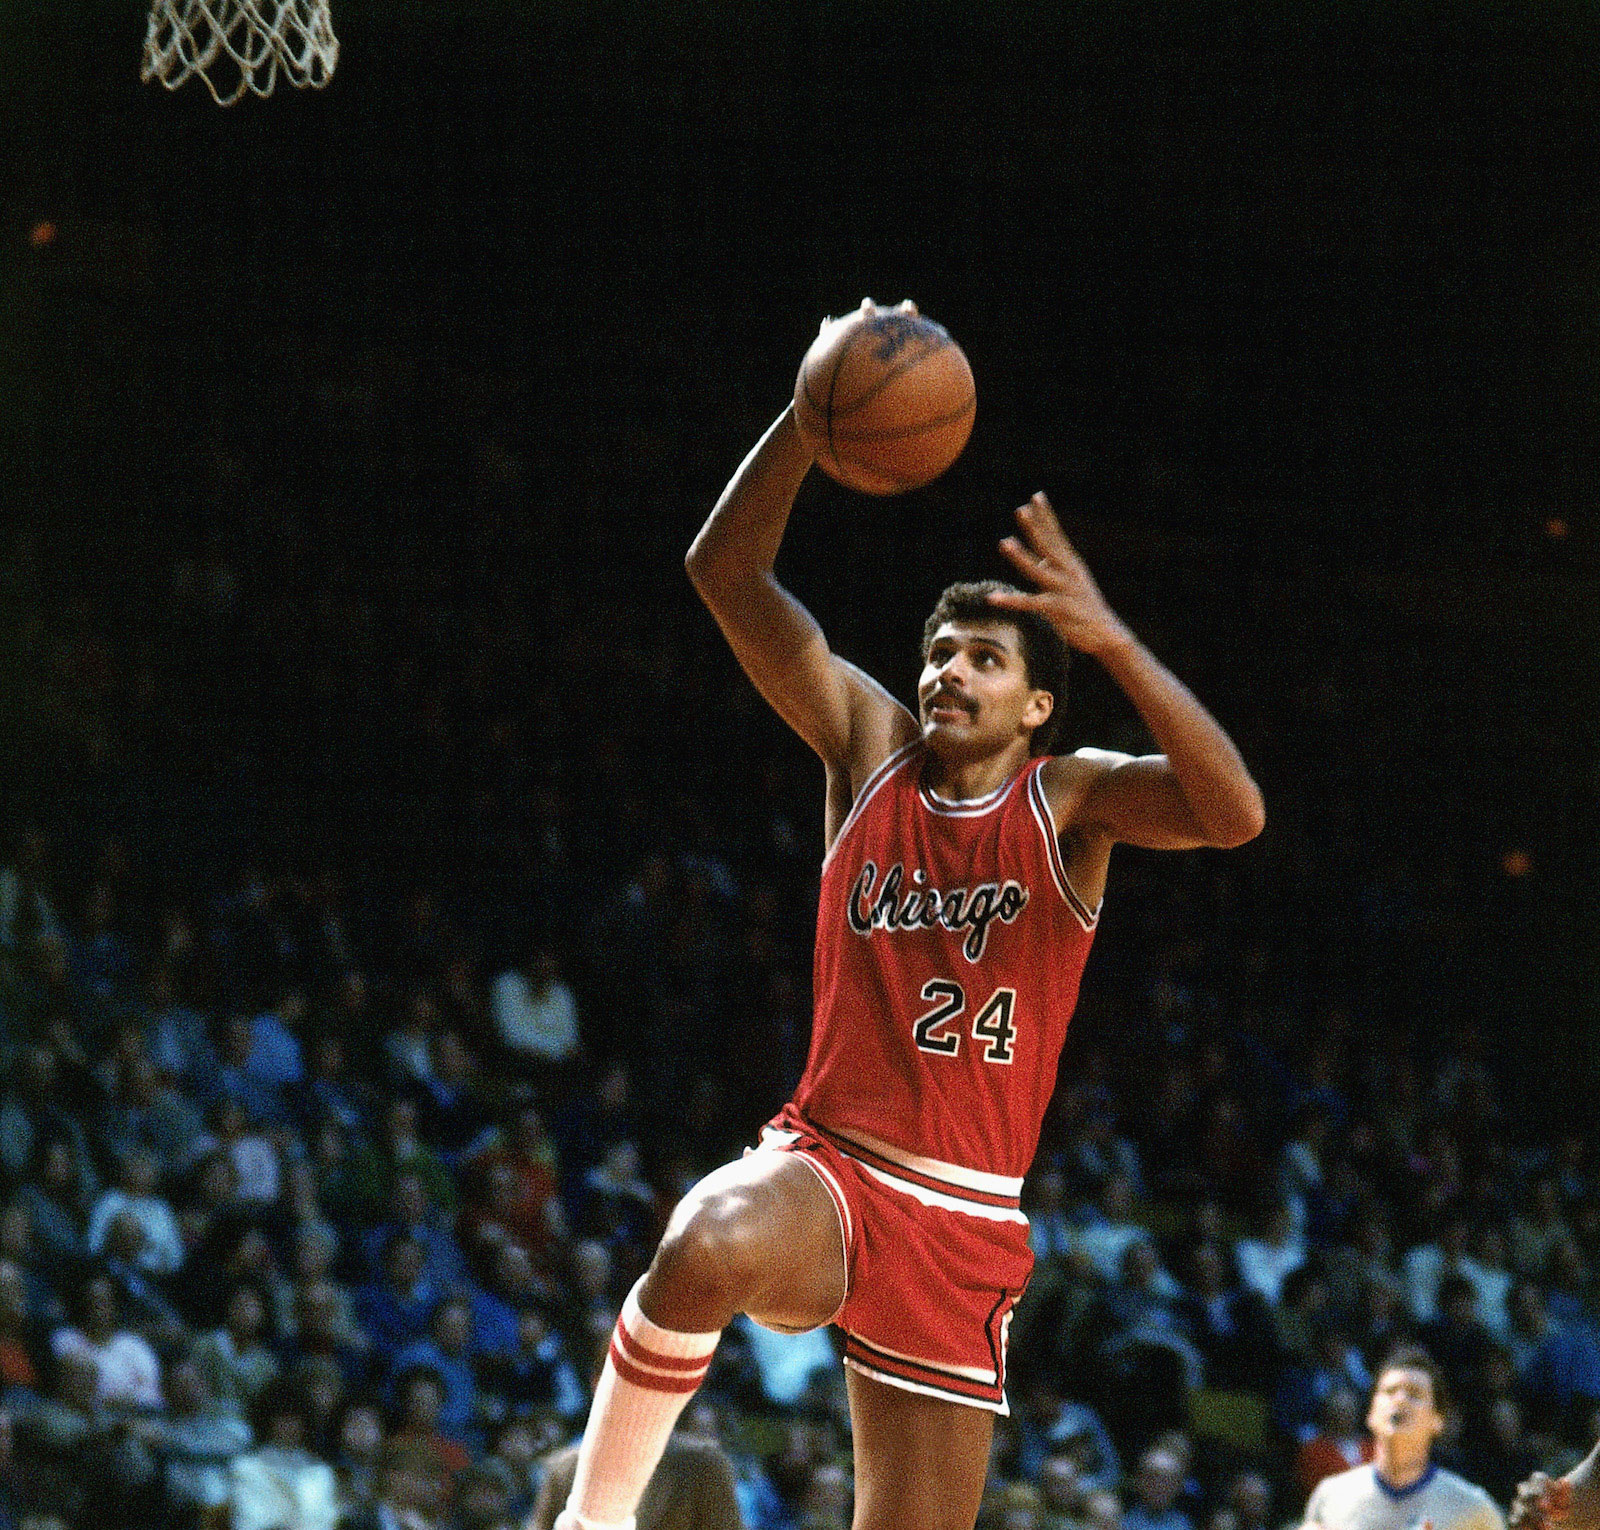 Reggie Theus #24 of the Chicago Bulls drives to the basket against the Atlanta Hawks during an NBA game in 1980 at the Omni in Atlanta, Georgia.